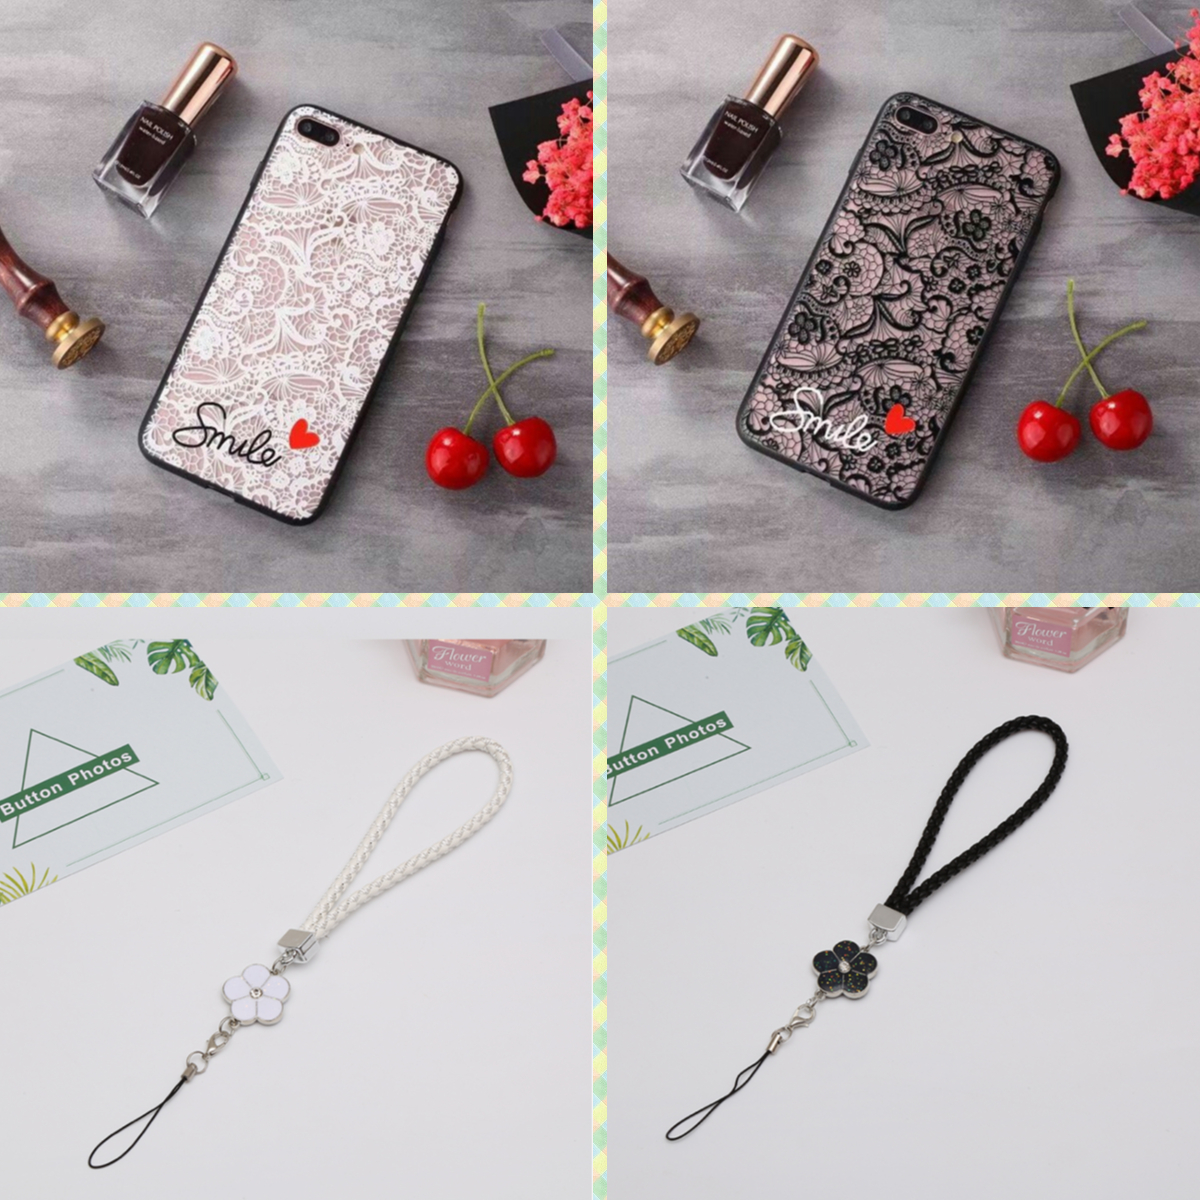 เคส Samsung M31 A31 A9 A7 J8 J7 J6 J6+ J5 J4 J4+ J2 Prime Pro Plus 2018 Ultra-thin and Anti-drop Lace Design Soft Case Cover and Flower Hand Strap